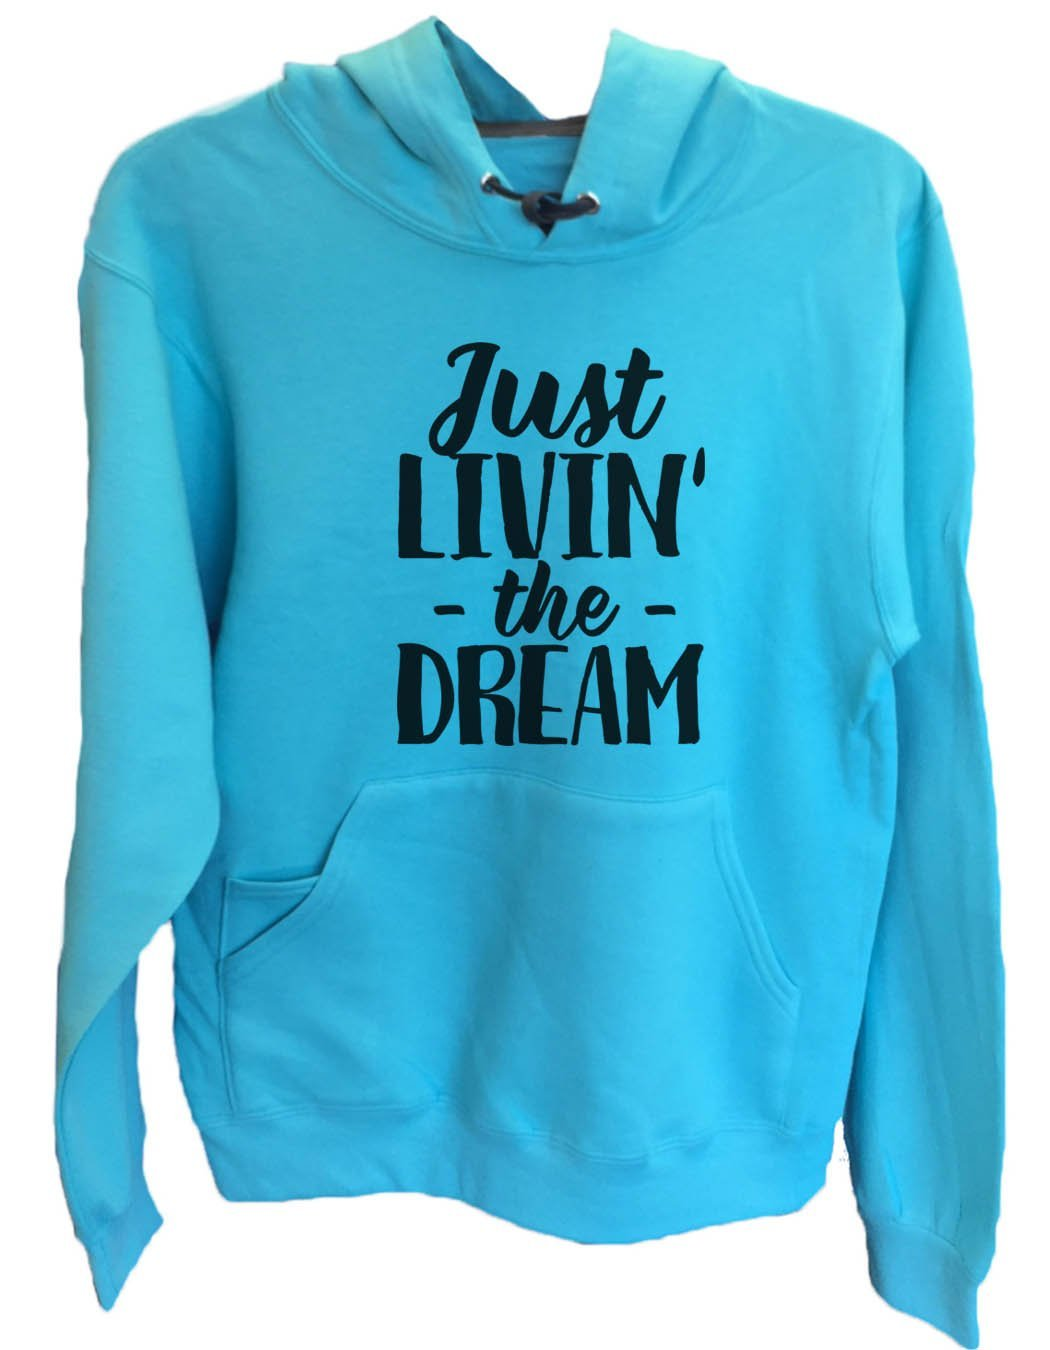 UNISEX HOODIE - Just Livin' The Dream - FUNNY MENS AND WOMENS HOODED SWEATSHIRTS - 2177 Funny Shirt Small / Turquoise